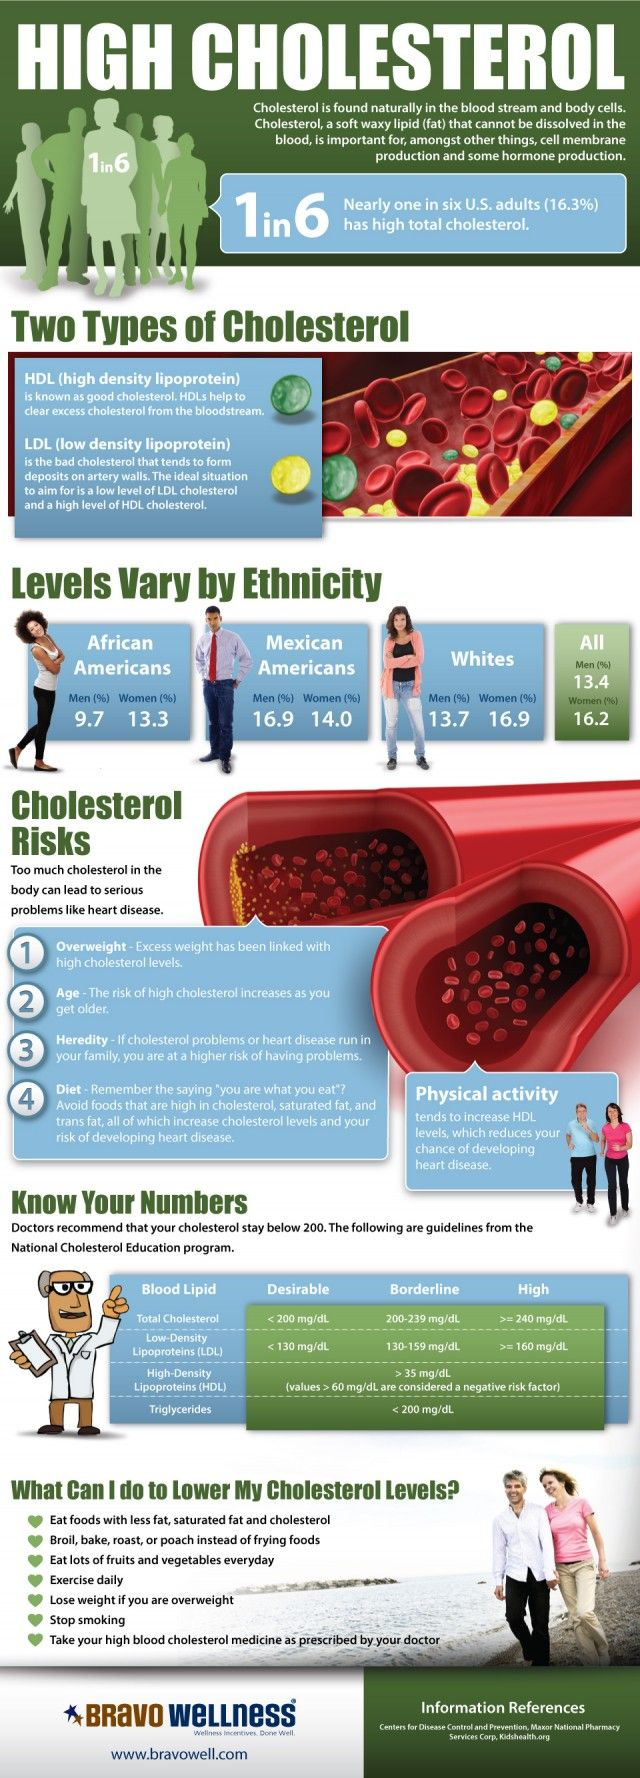 1 out of 6 adults has high cholesterol. That is a surprisingly large amount, and I bet many people don't even know it